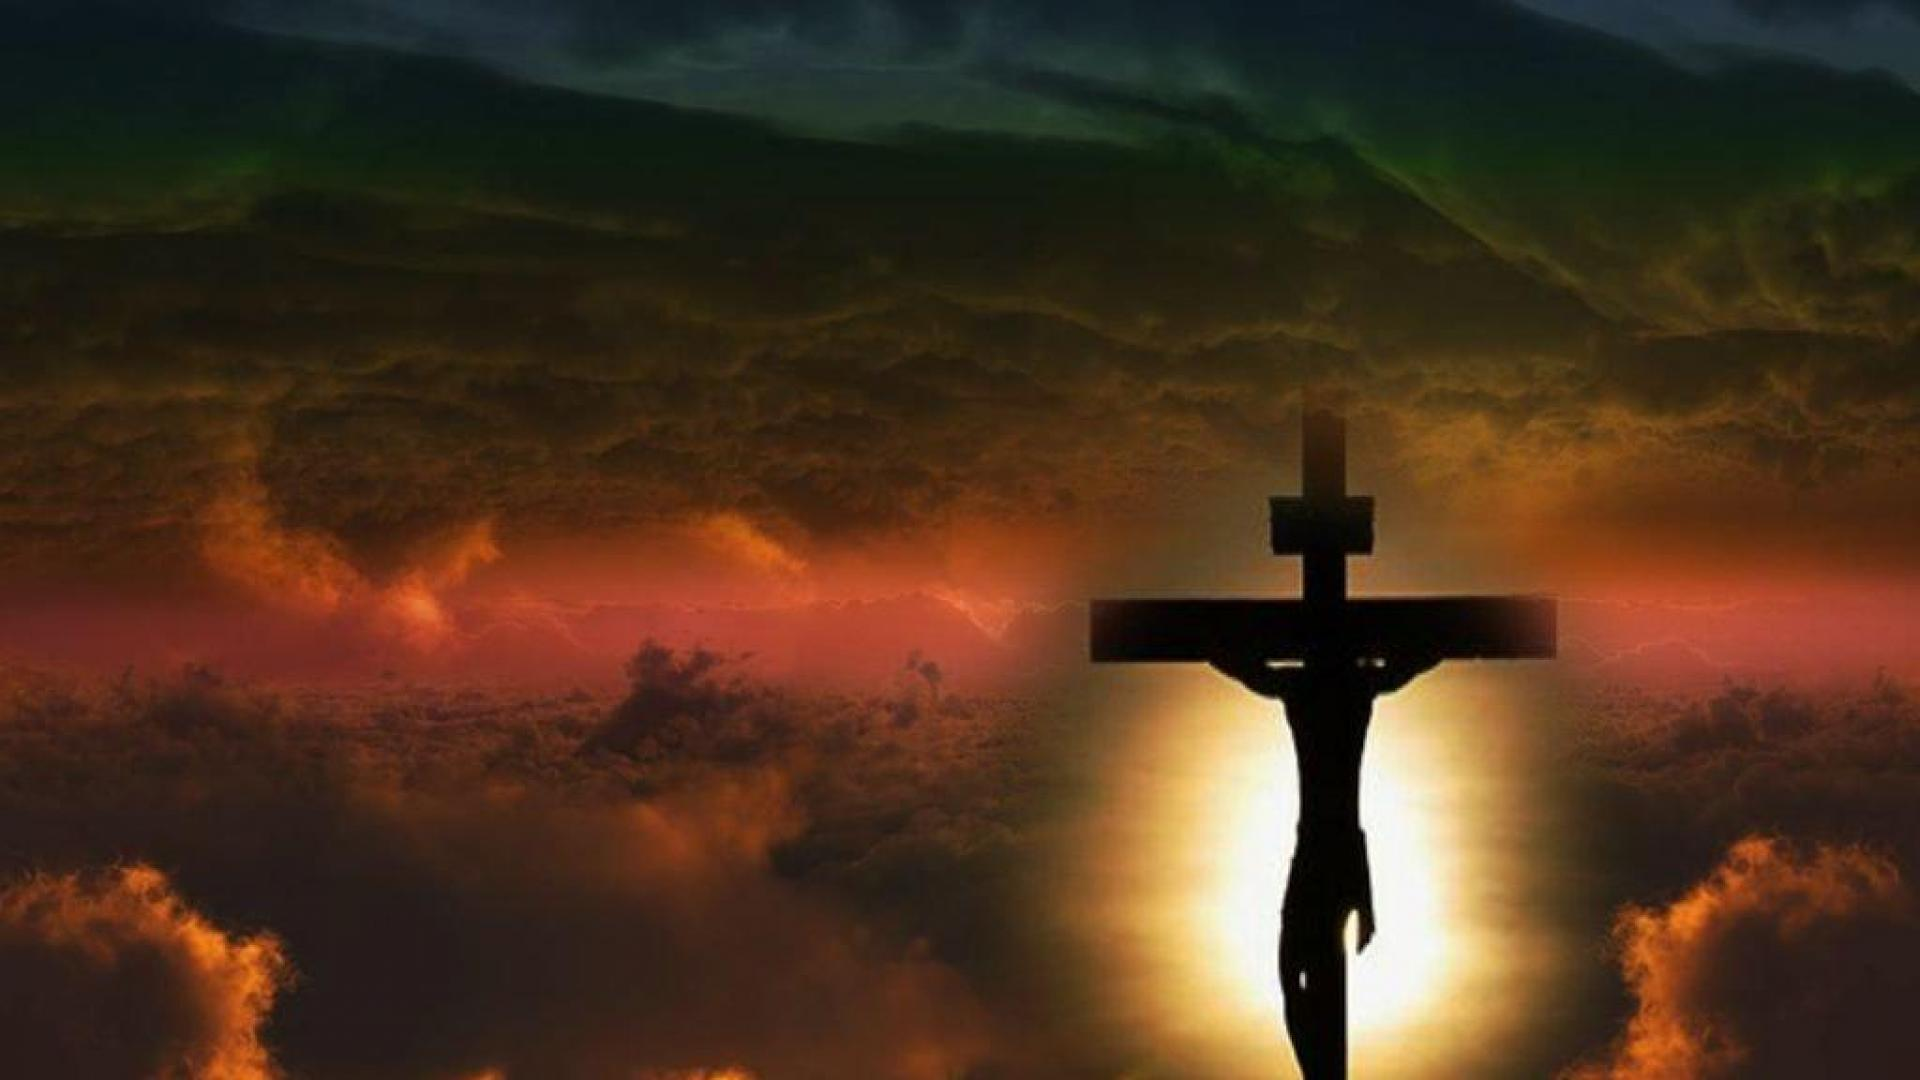 43 jesus hd wallpaper 1920x1080 on wallpapersafari - Full hd christian wallpaper ...